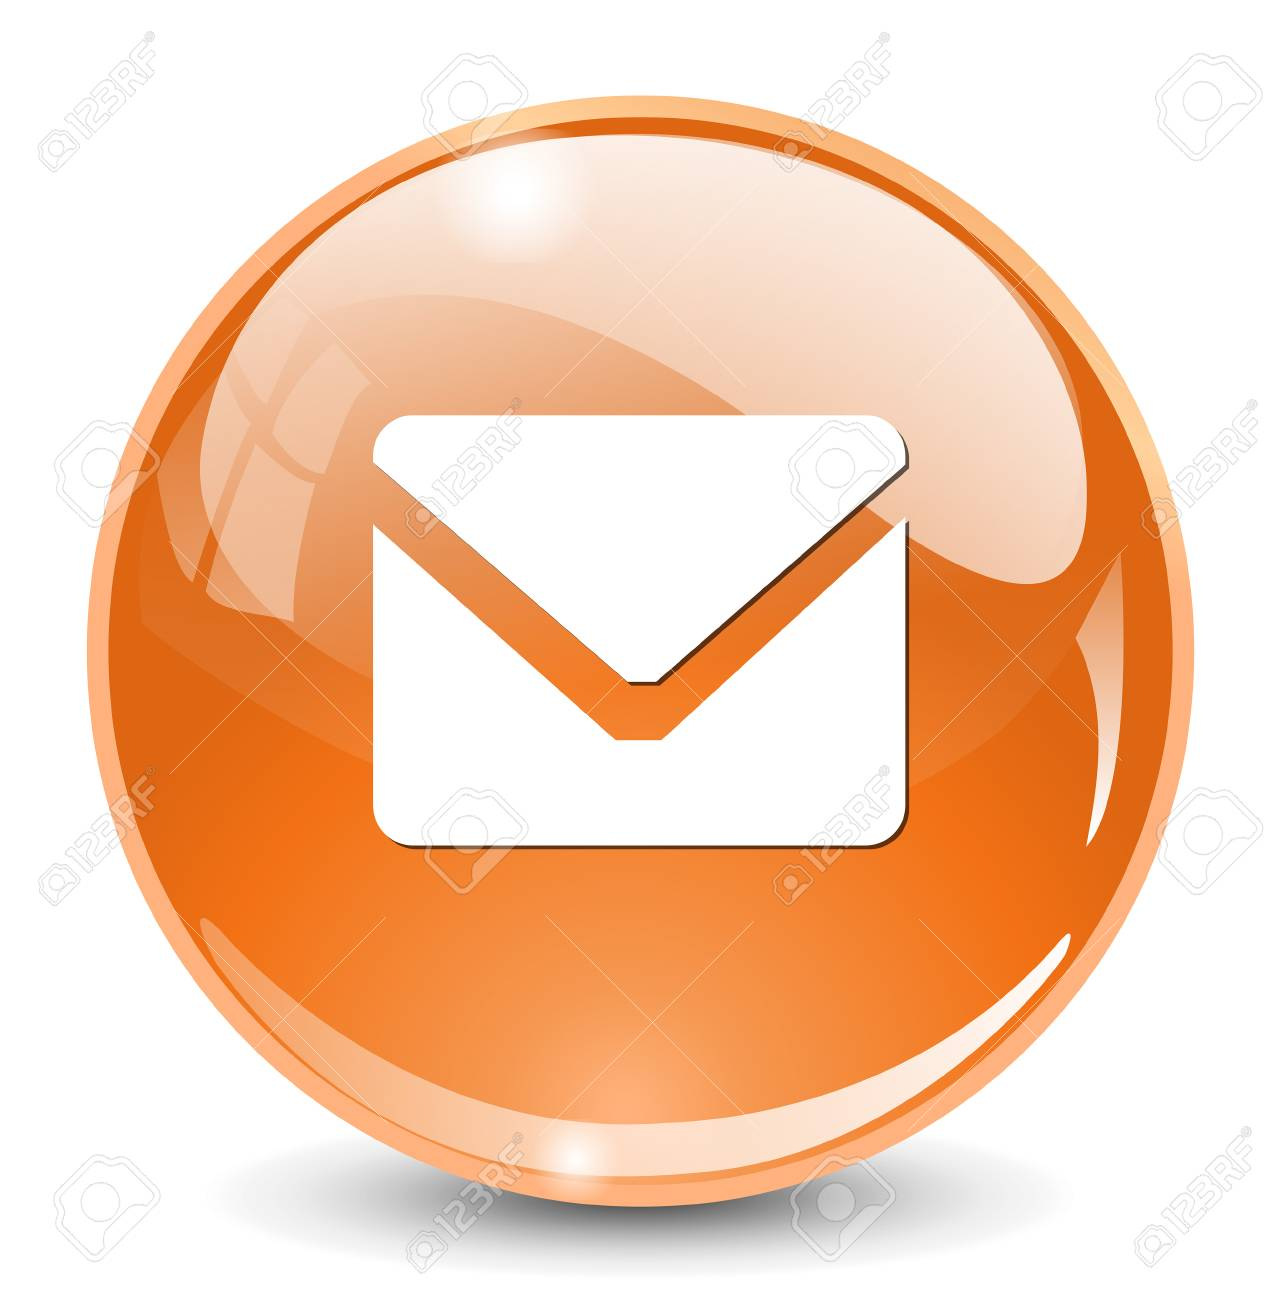 mail icon - 35666519